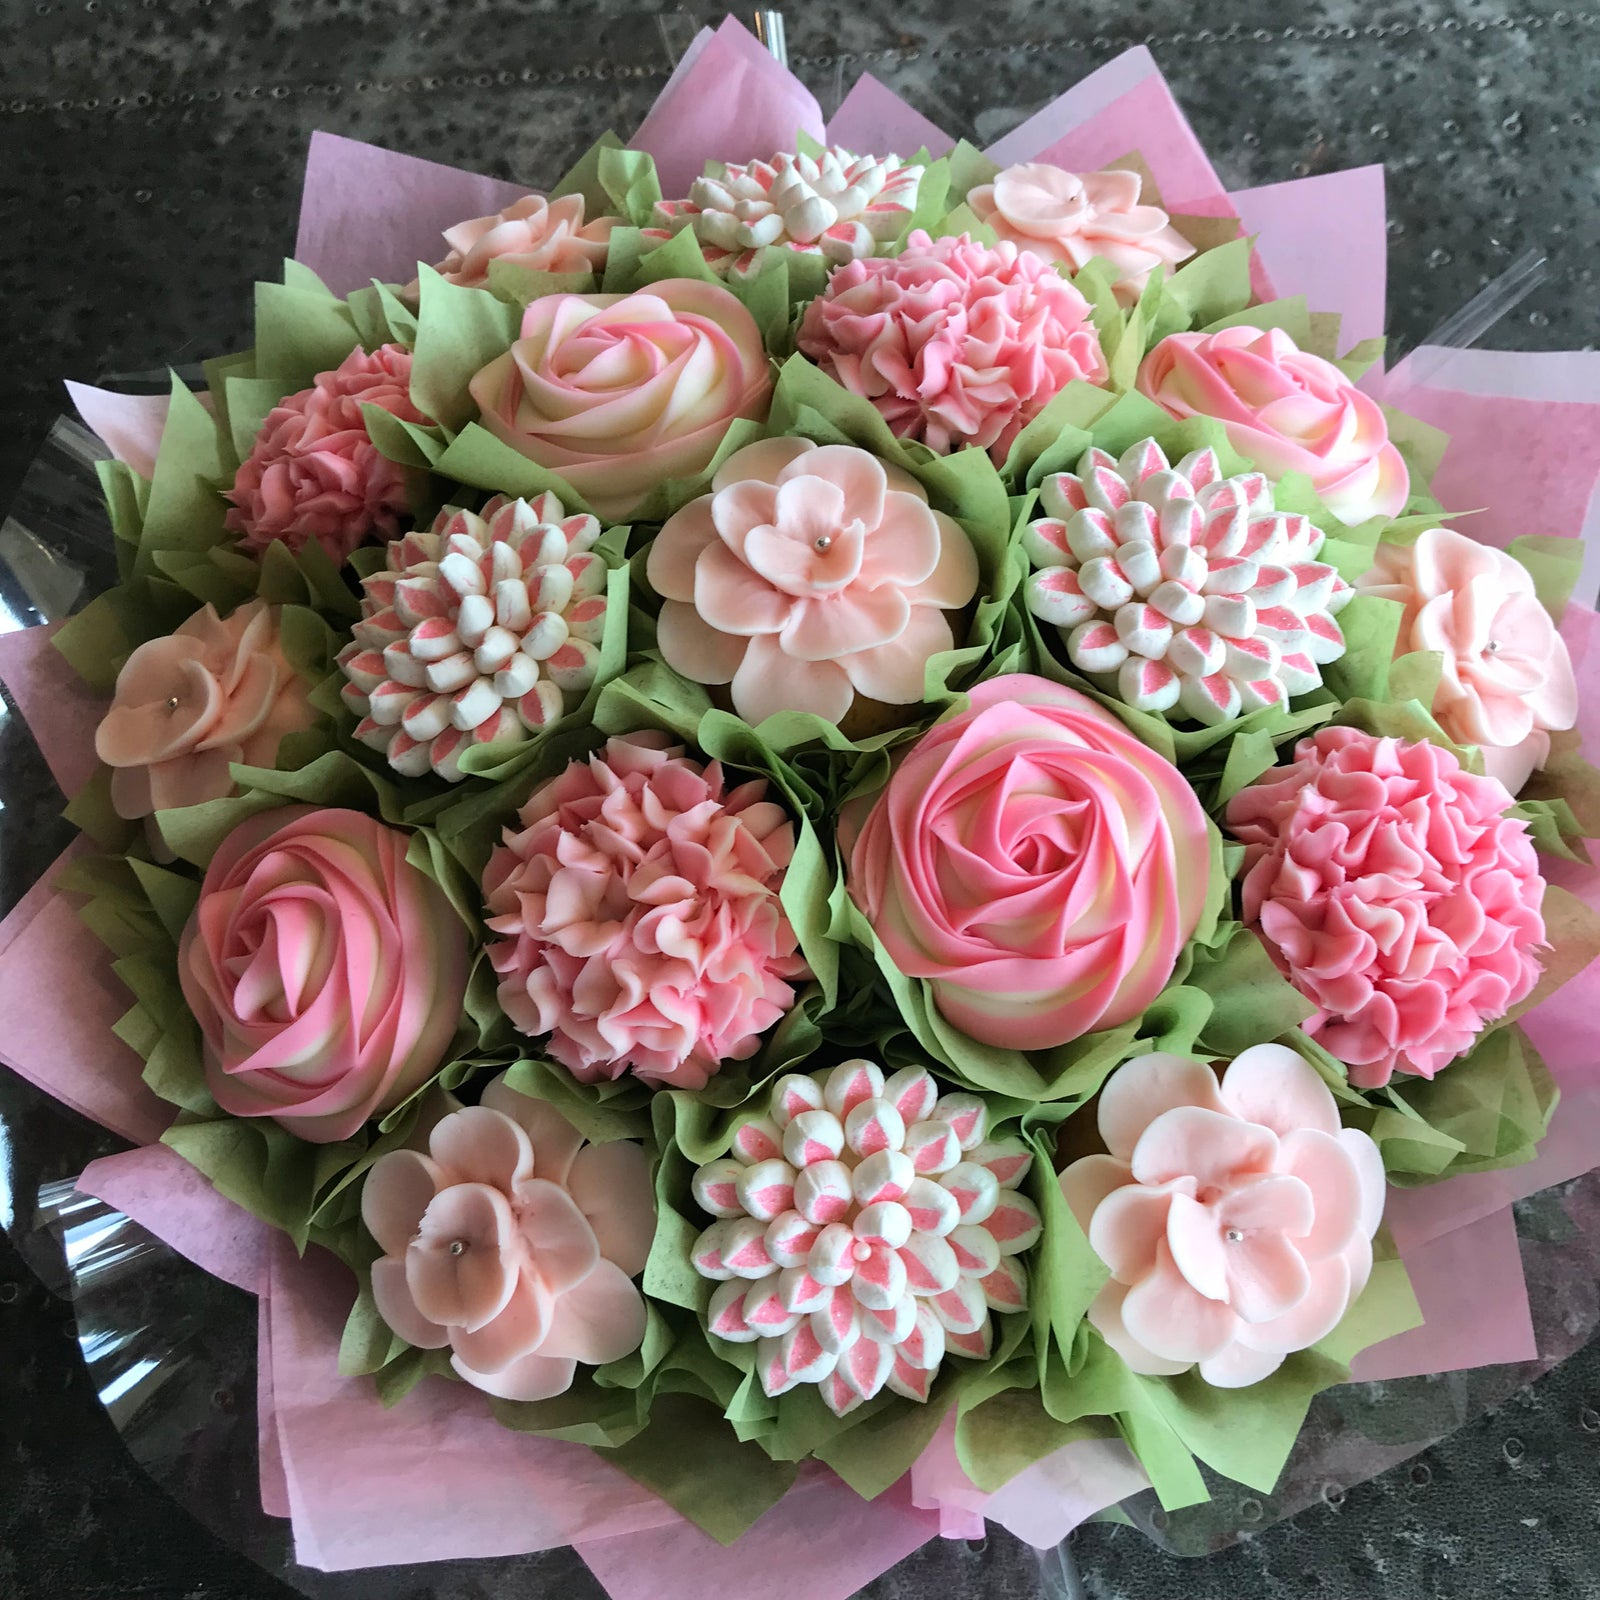 Cupcake bouquets edible floral gifts hollys cupcake bouquet 501c3 nonprofit izmirmasajfo